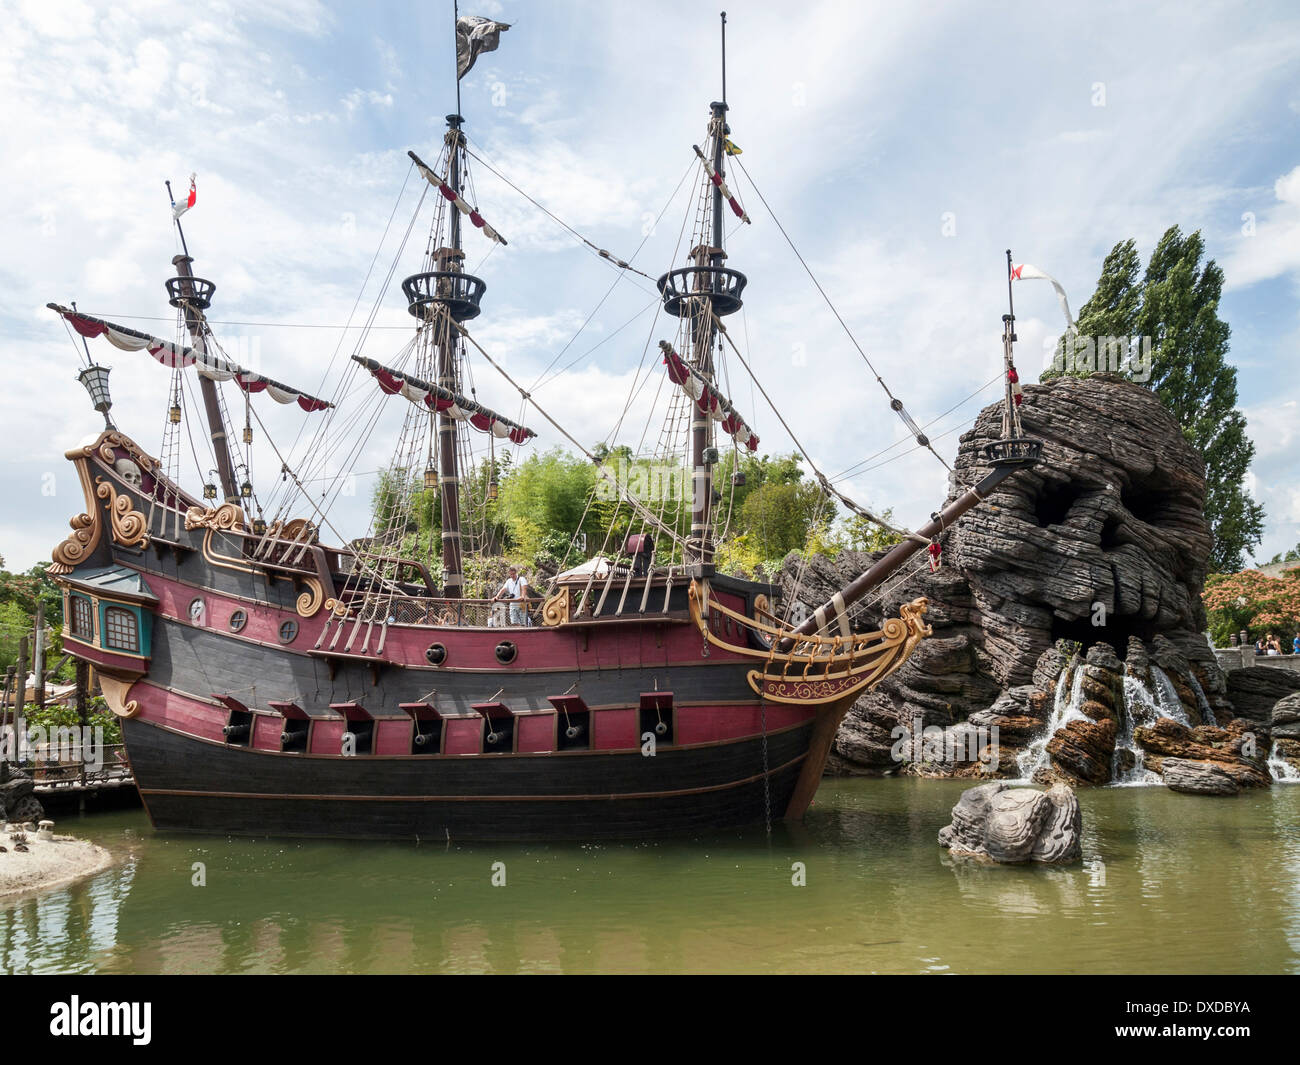 Captain hook 39 s pirate ship at disneyland paris france - Bateau pirate peter pan ...